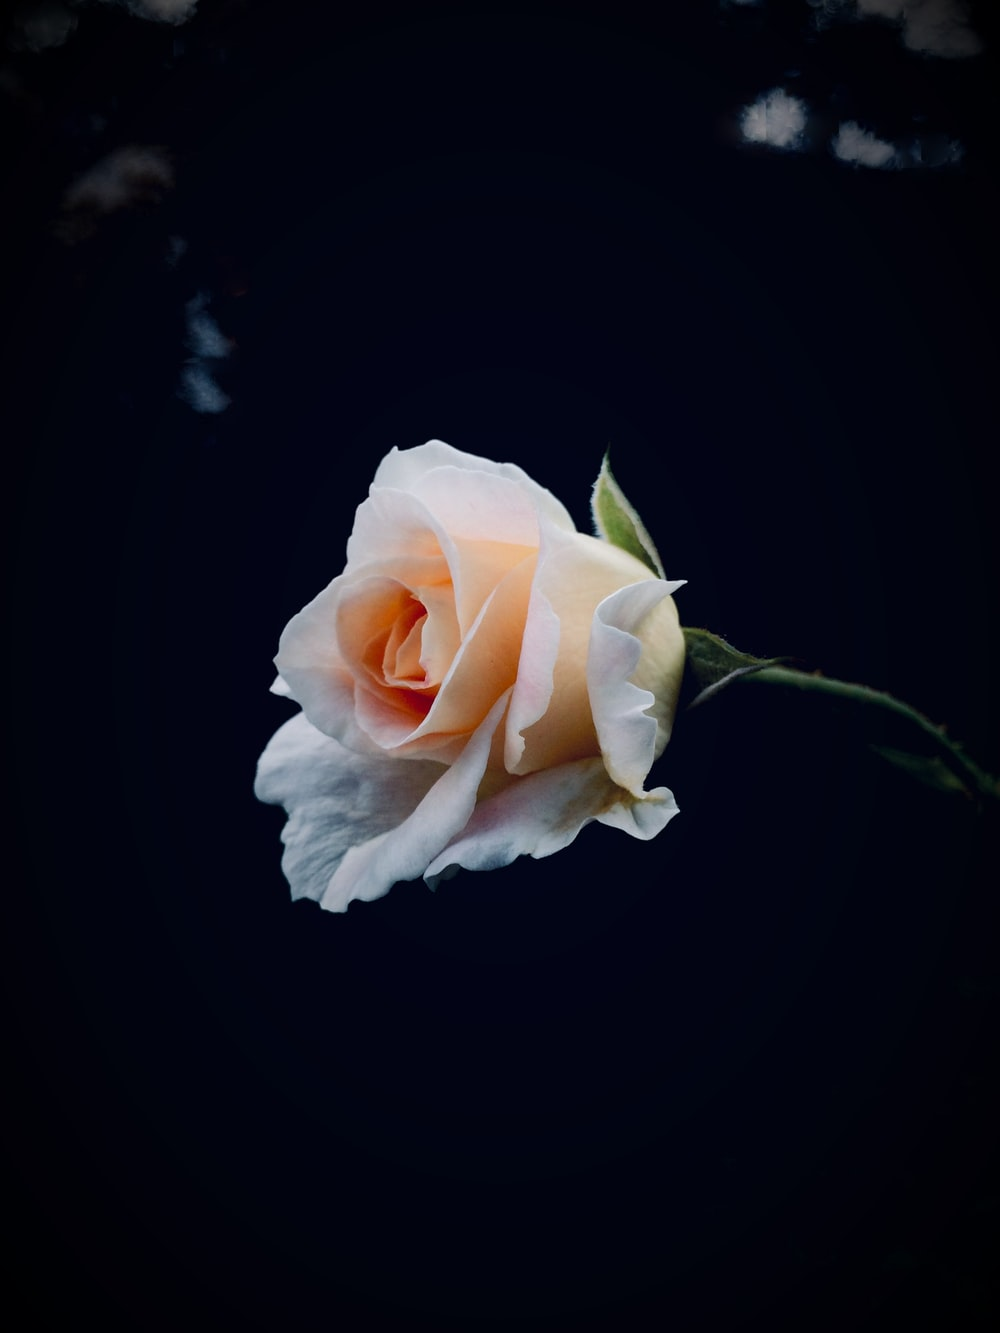 shallow focus photo of white rose